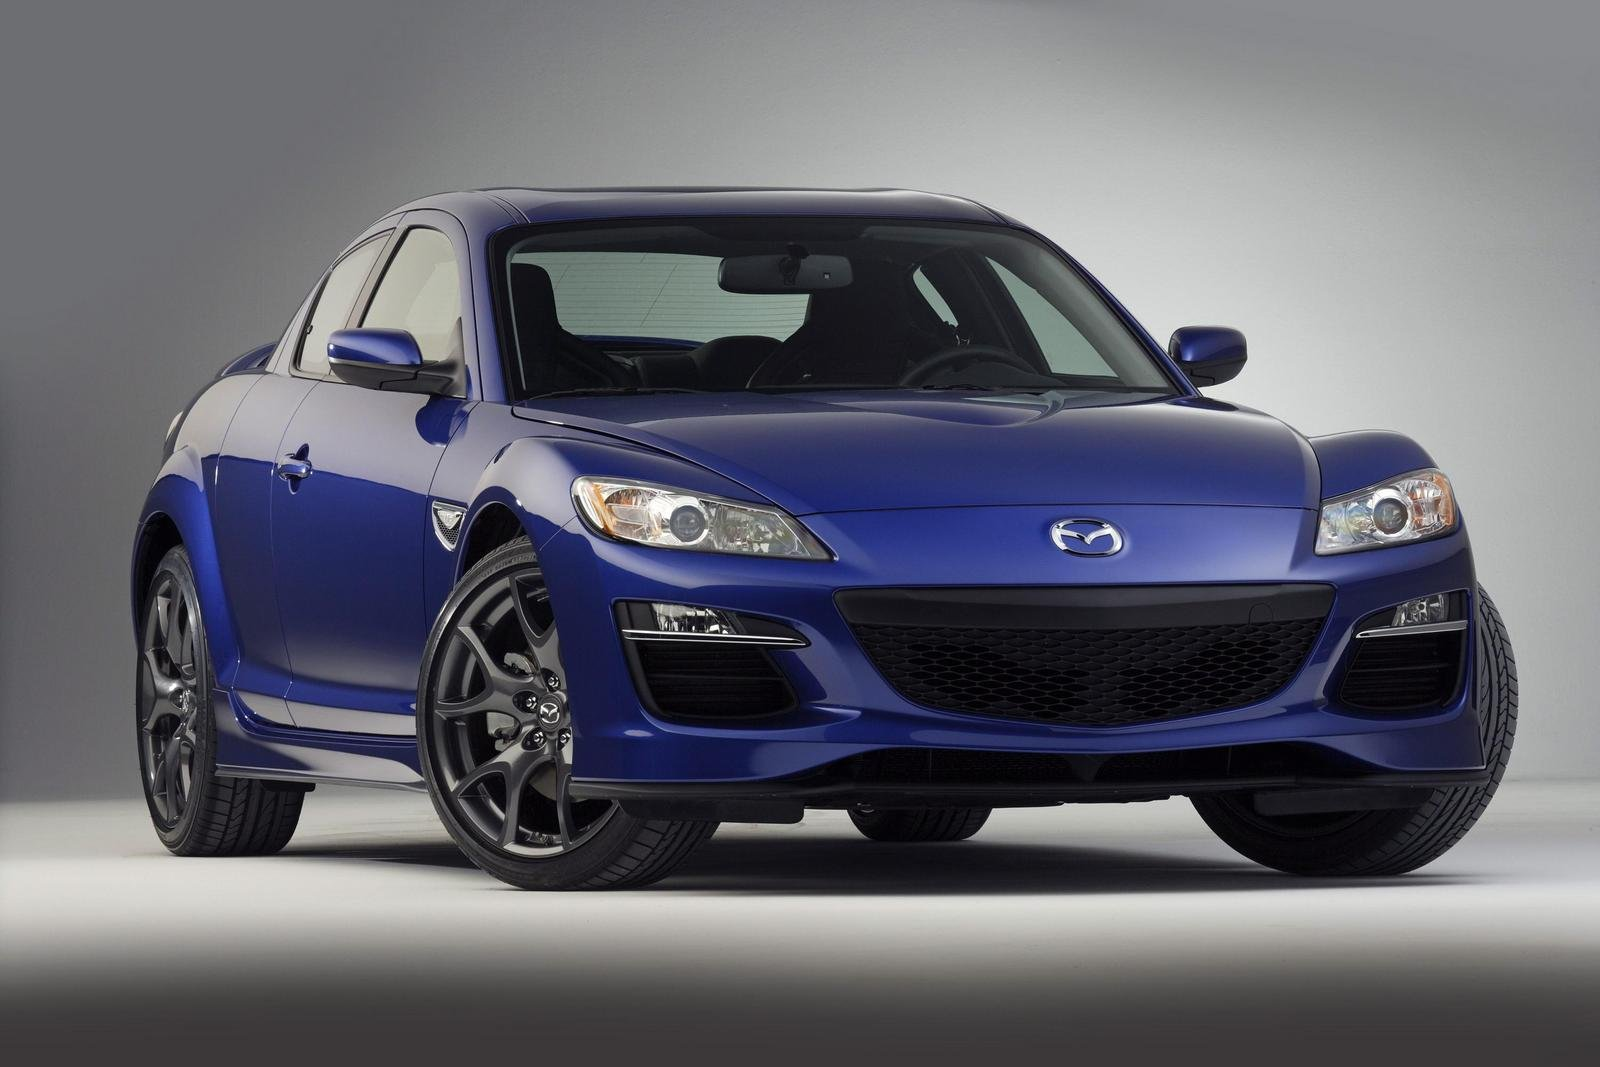 2009 mazda rx 8 review top speed. Black Bedroom Furniture Sets. Home Design Ideas